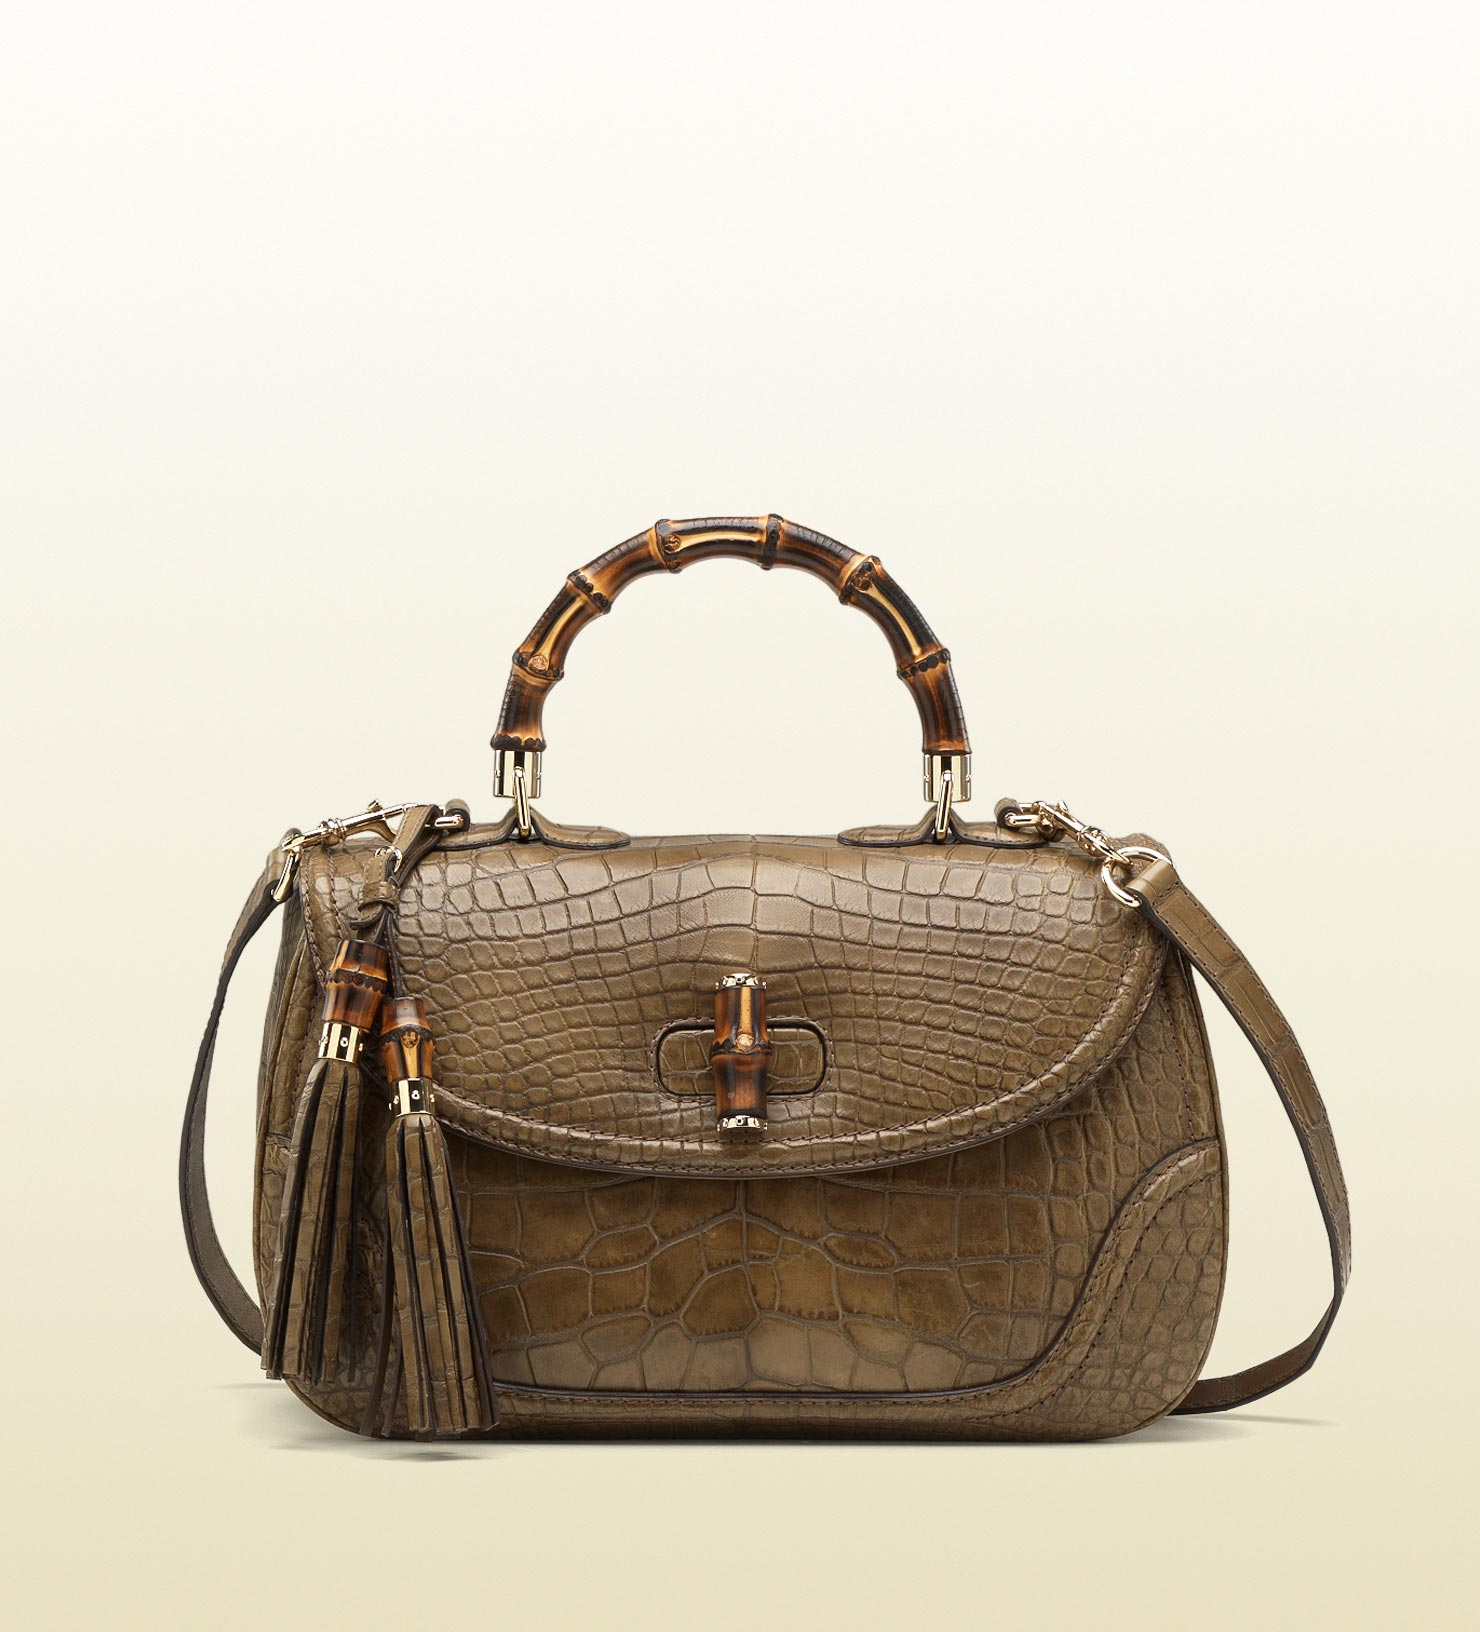 38975cbd8af7 Gucci New Bamboo Crocodile Top Handle Bag in Brown - Lyst